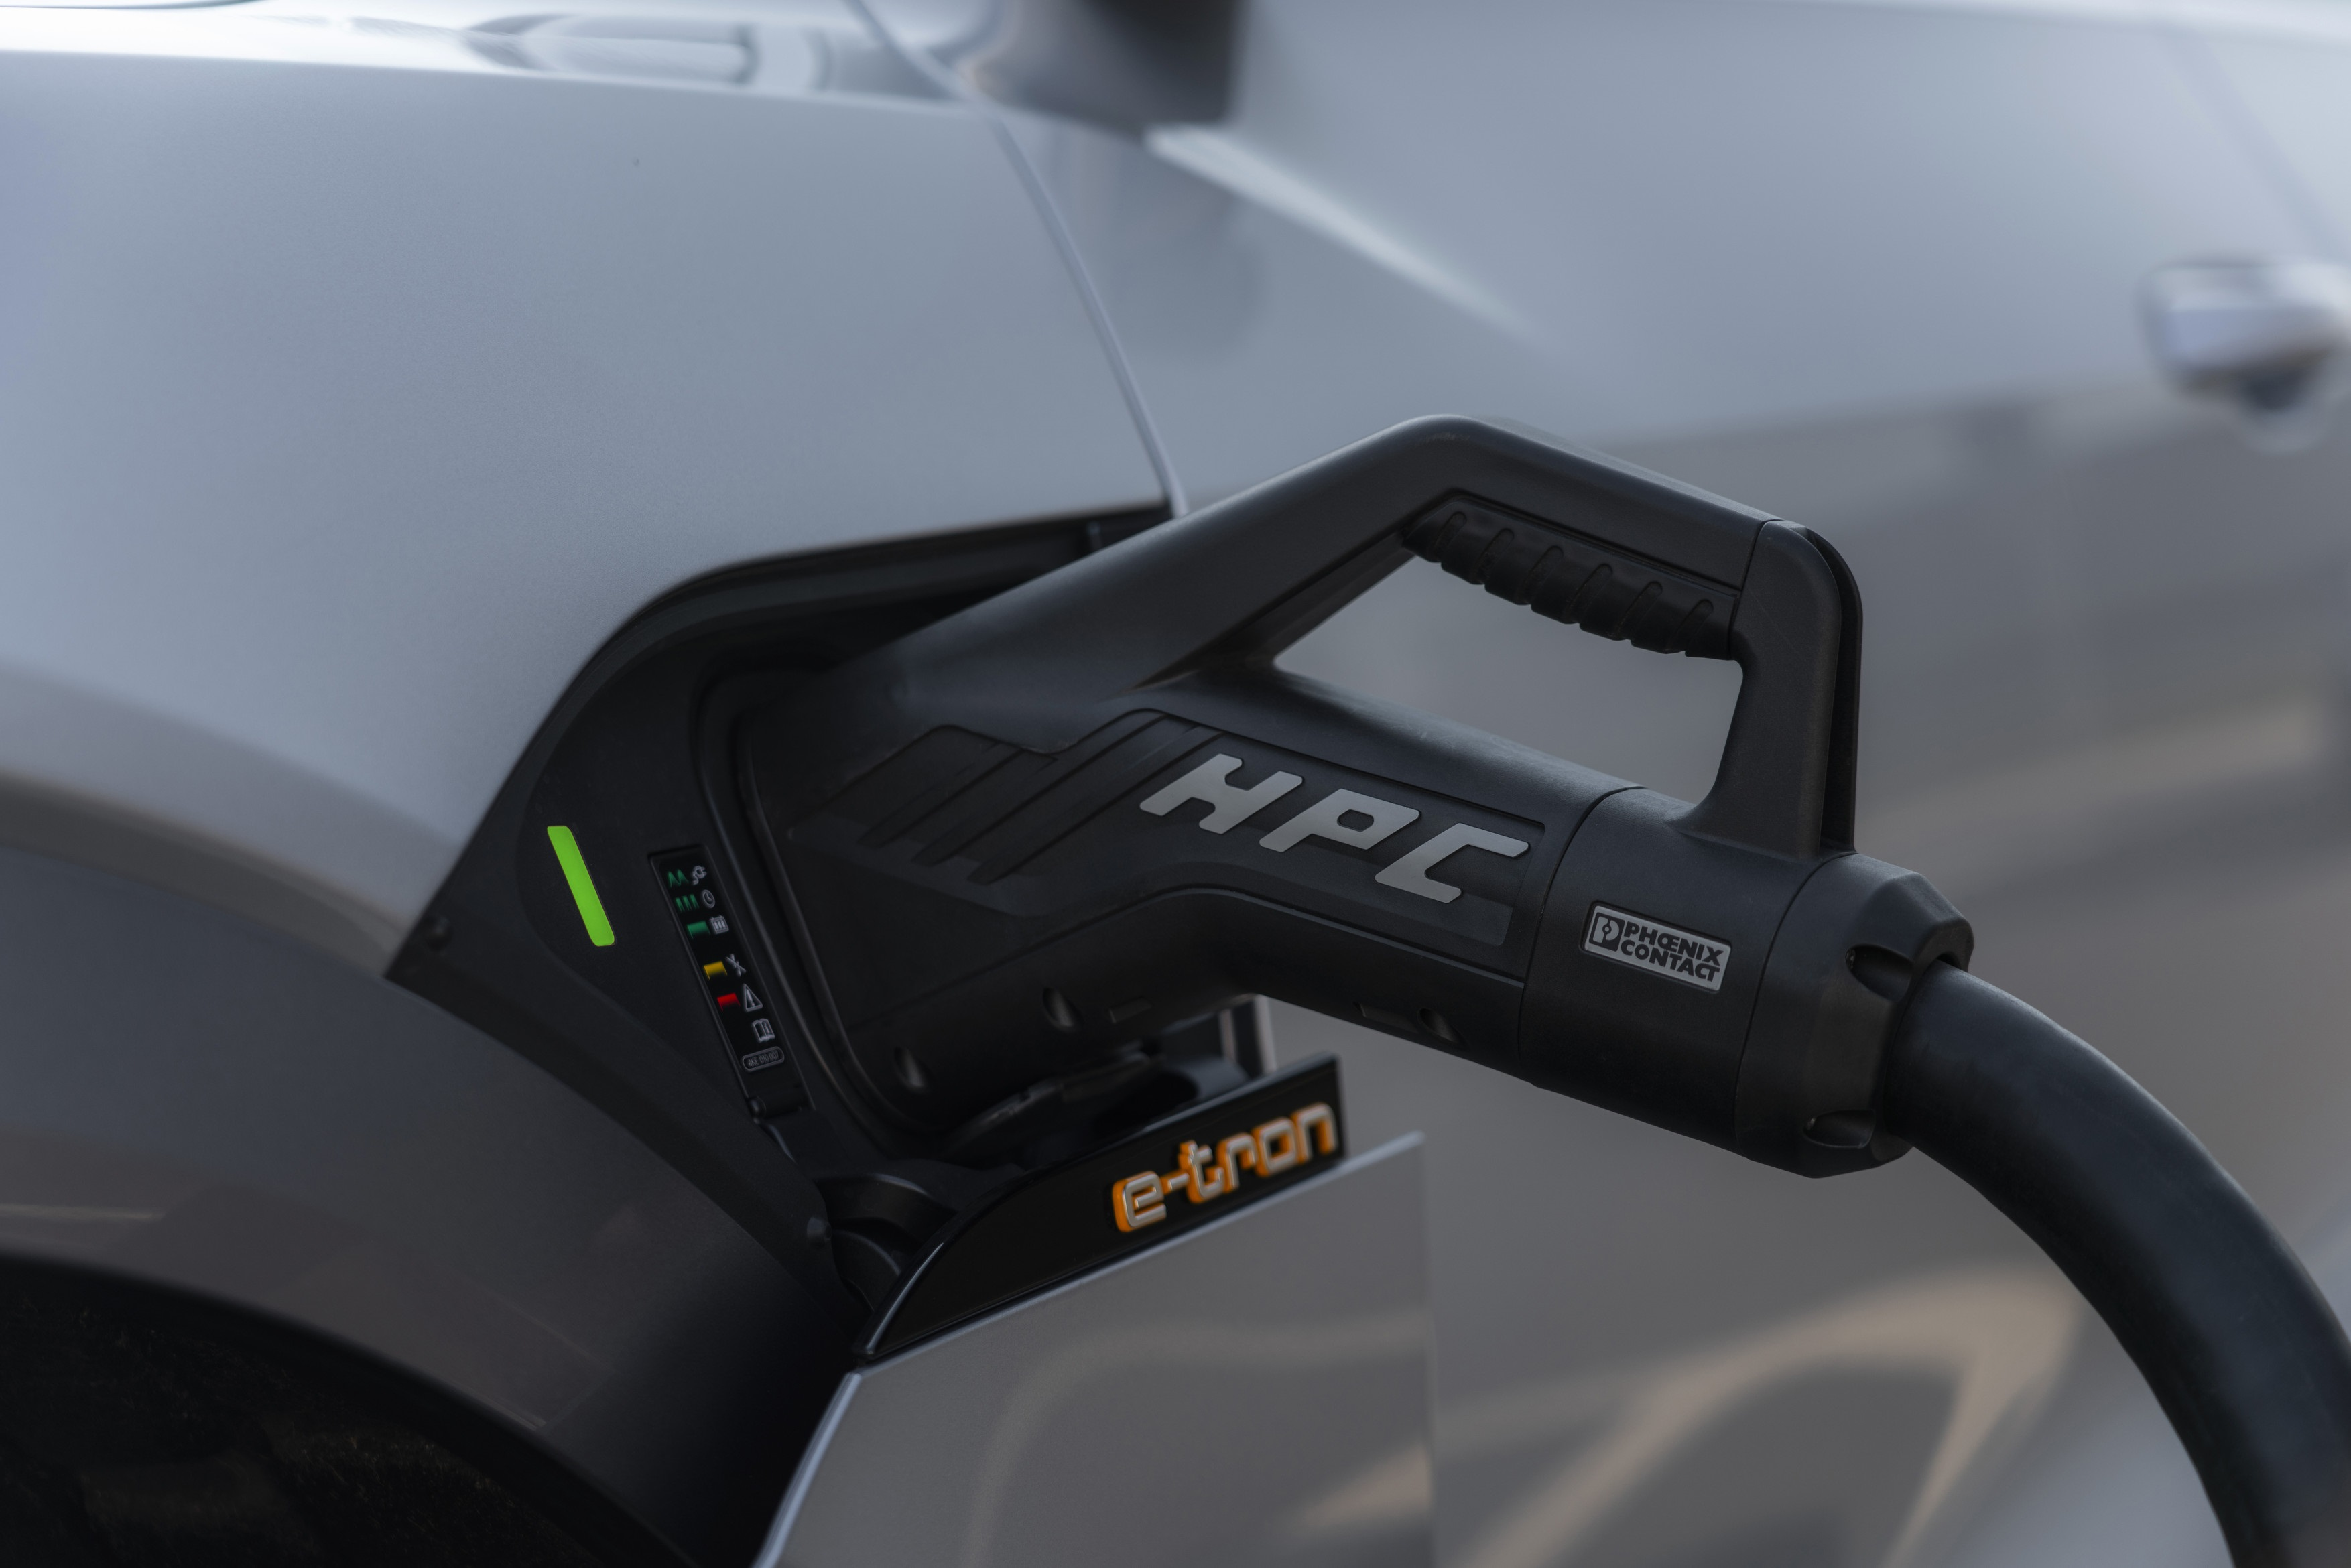 Audi's one-stop shop for EV charging, the e-tron charging service